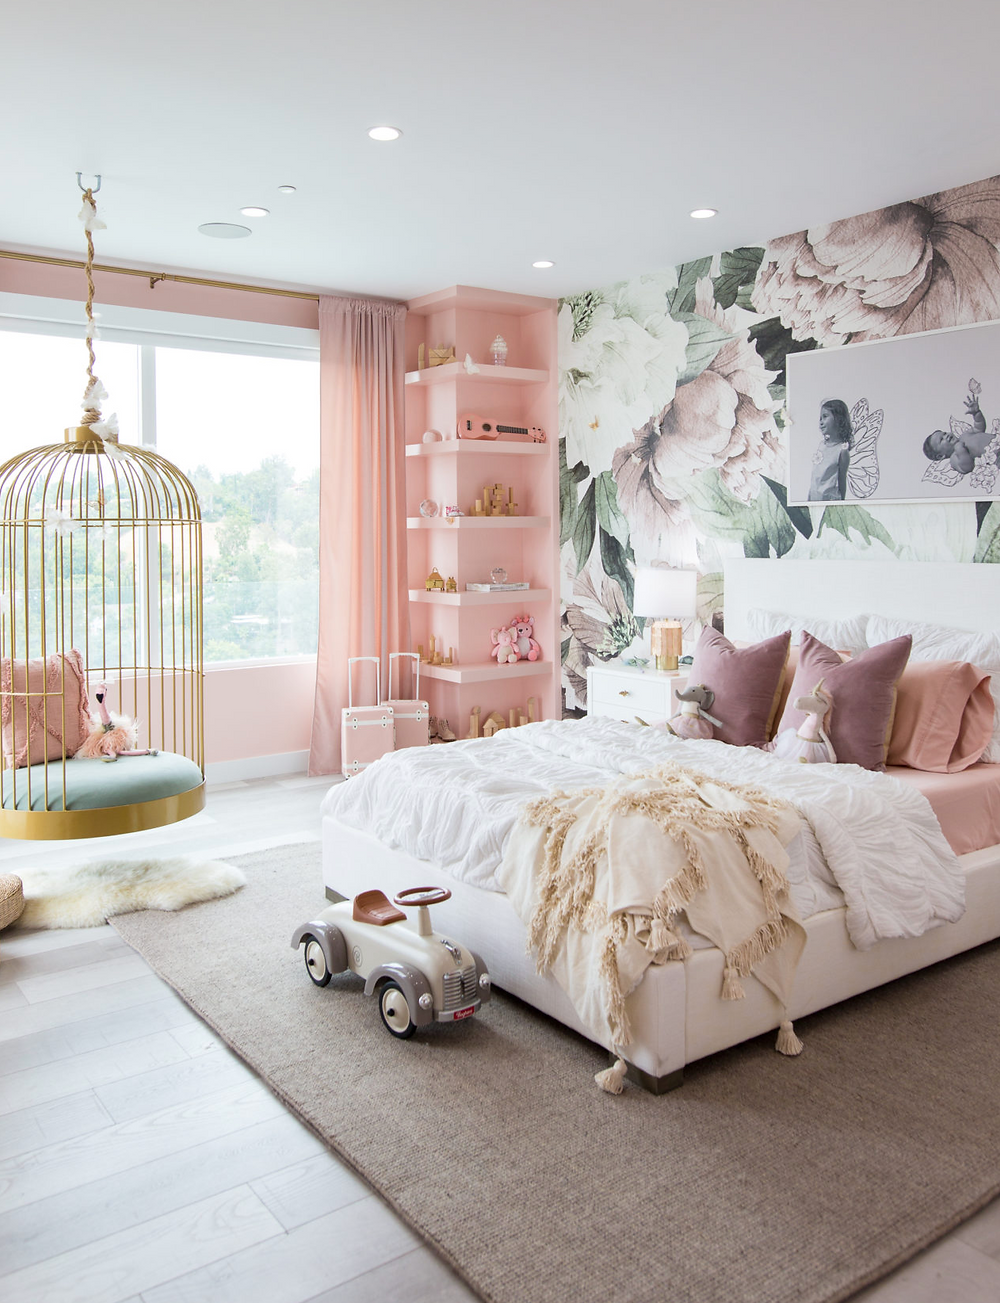 A little girls bedroom with floral wallpaper, pink shelves, a hanging swing and a a large cozy bed.